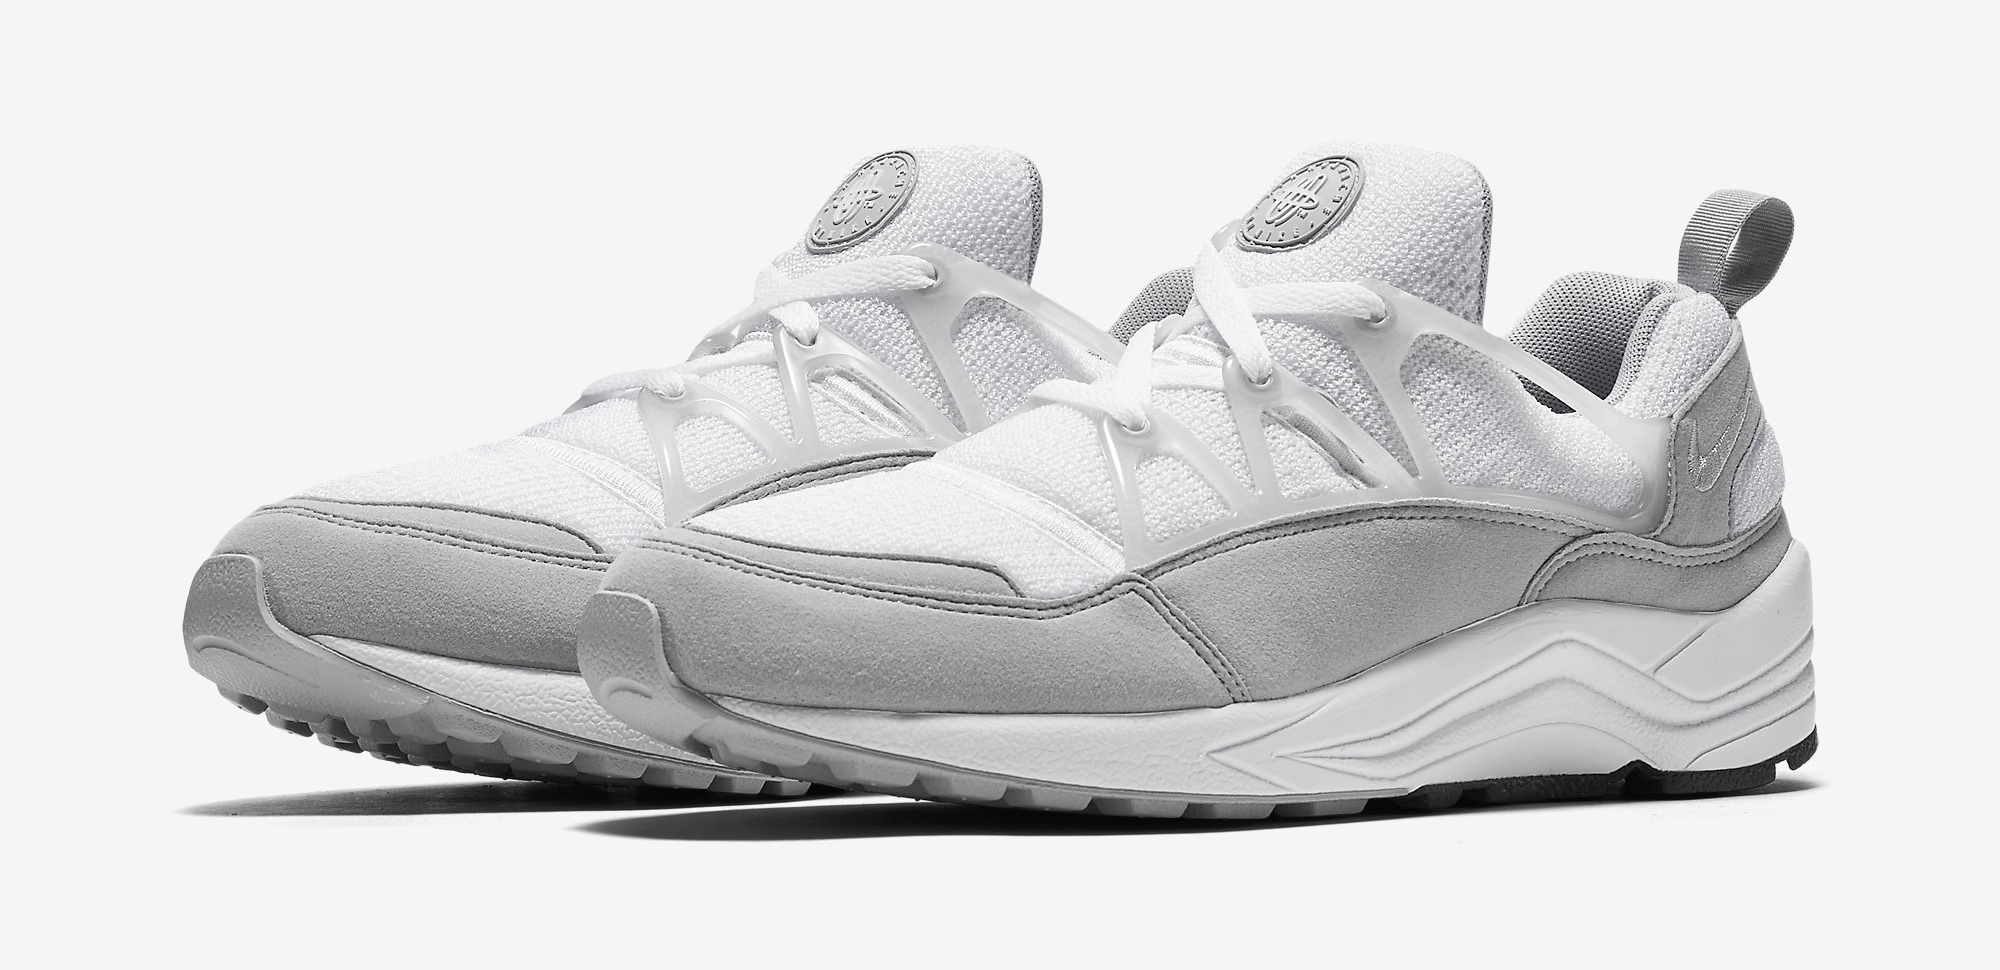 half off b6c84 ac08d Nike Air Huarache Light White Grey | Sole Collector